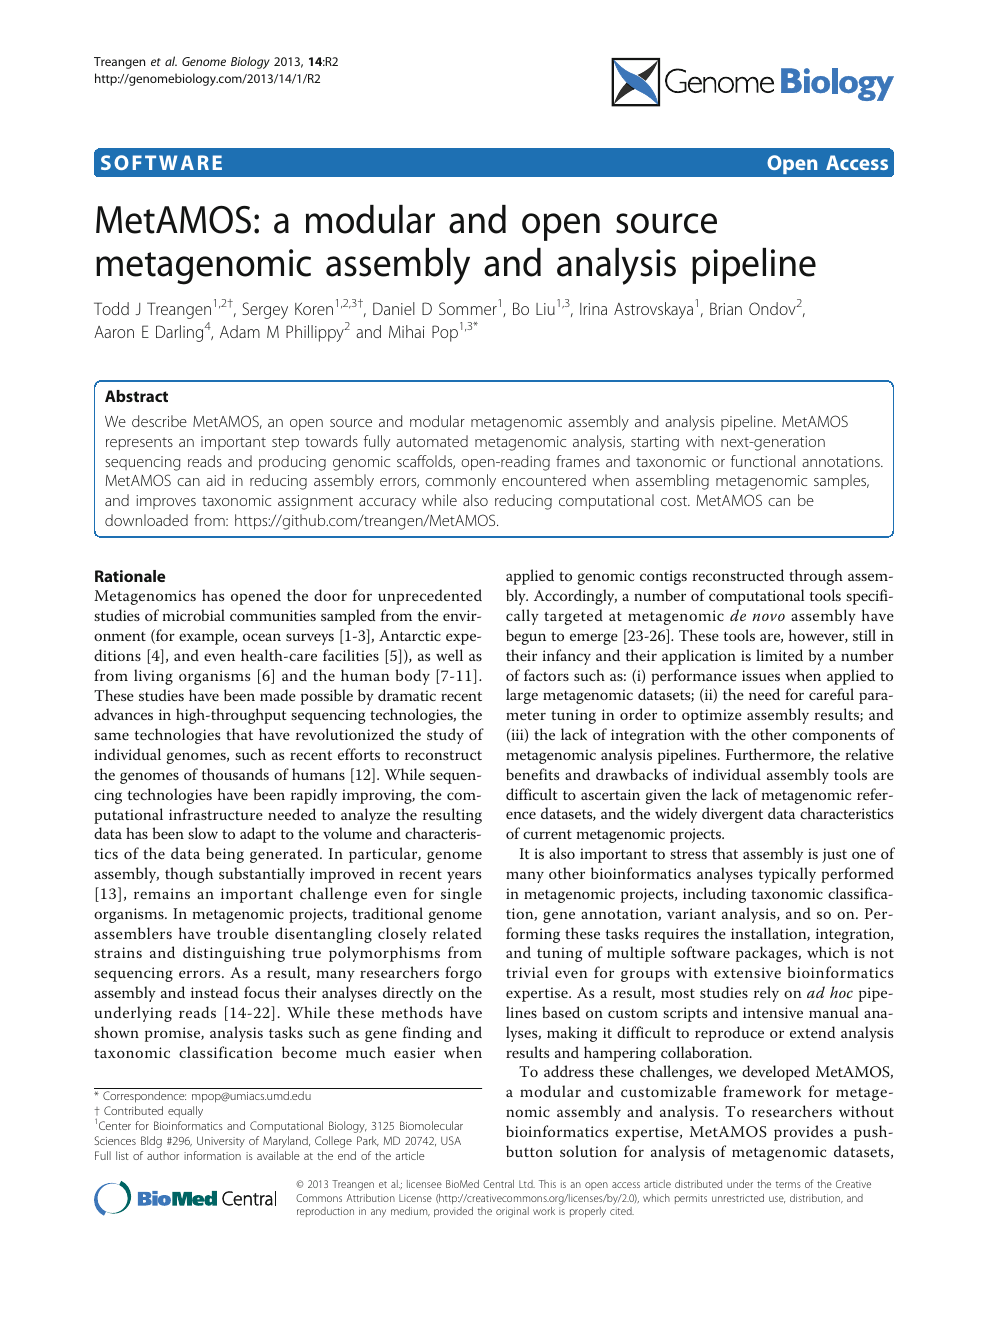 MetAMOS: a modular and open source metagenomic assembly and analysis